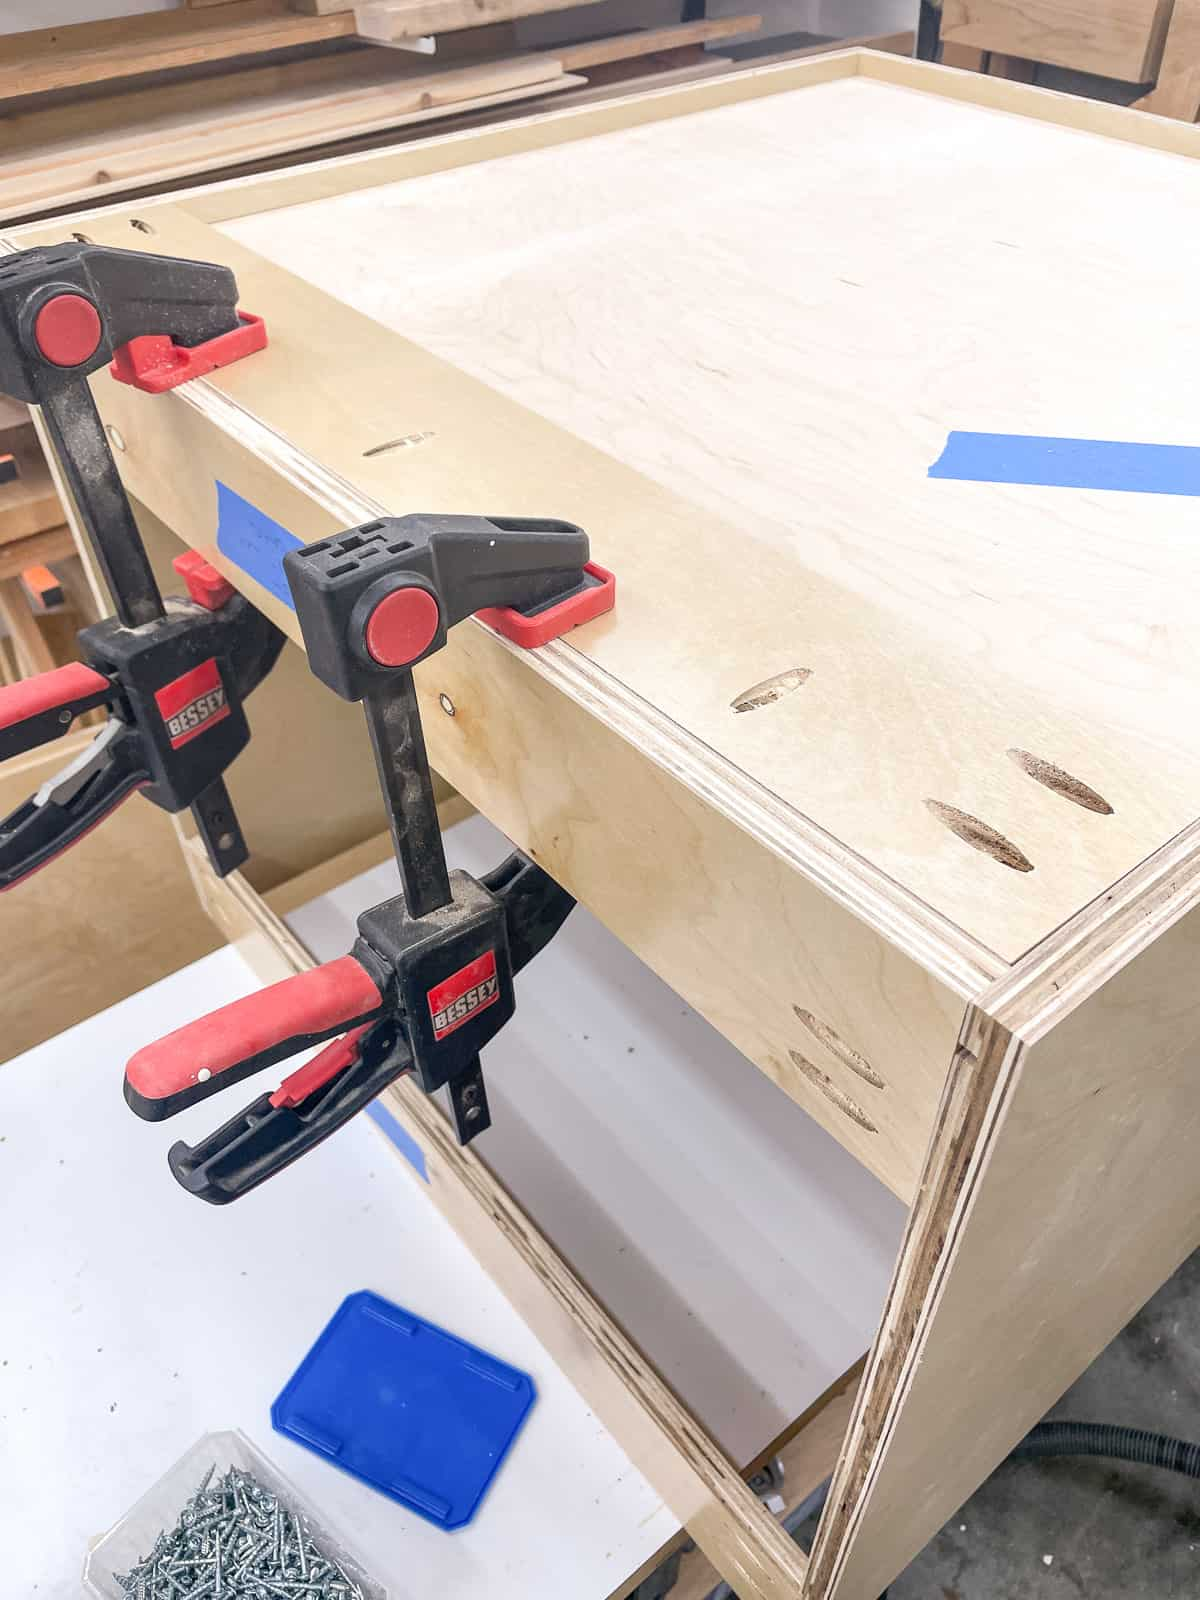 top nailer strip clamped to the back of the cabinet box